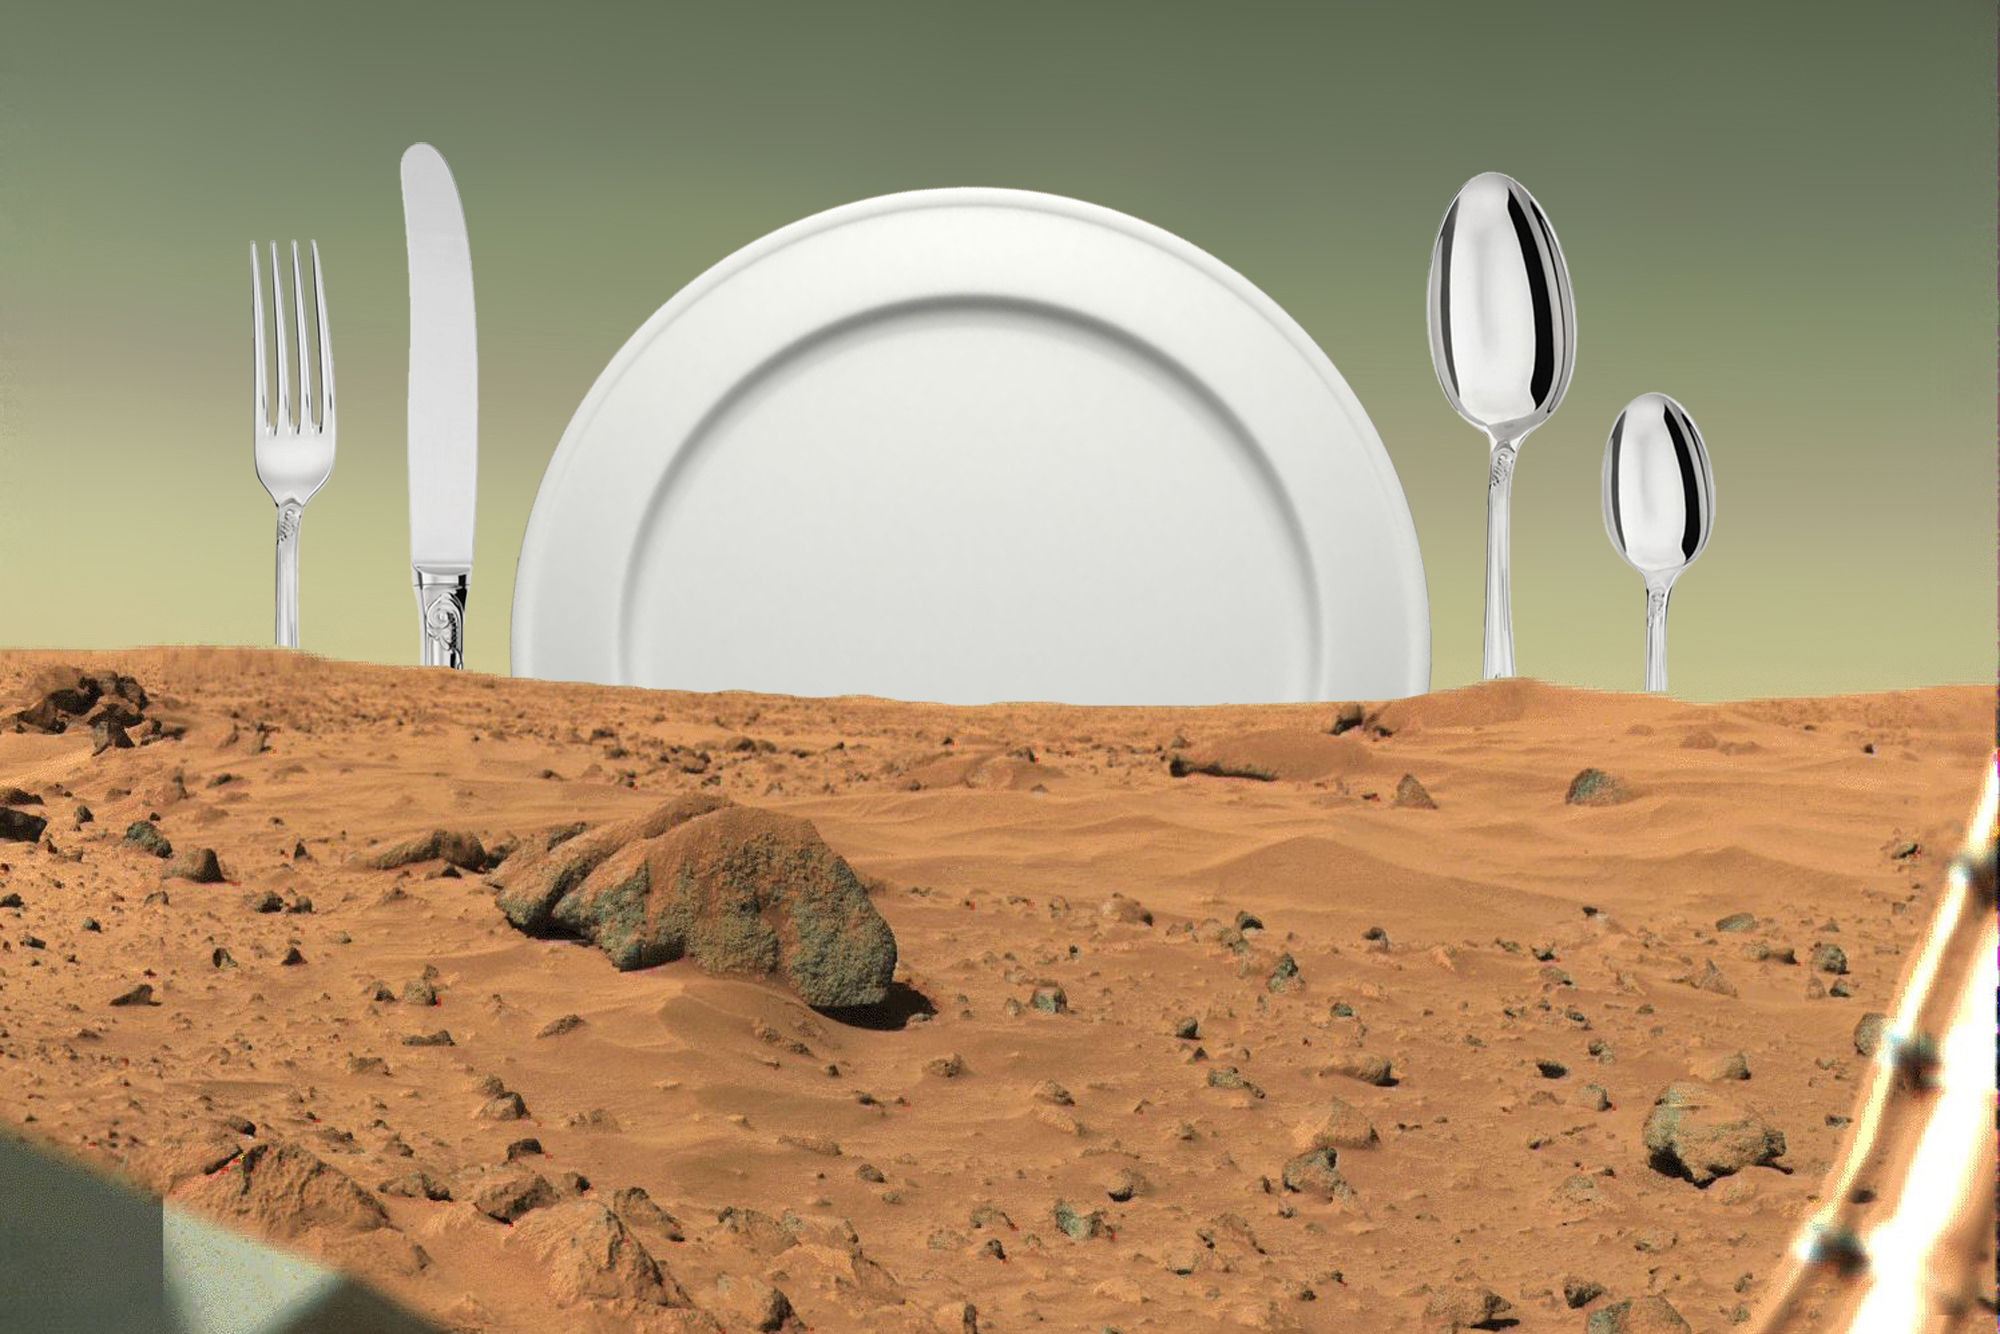 Headed for Mars? Check out what might be on the menu